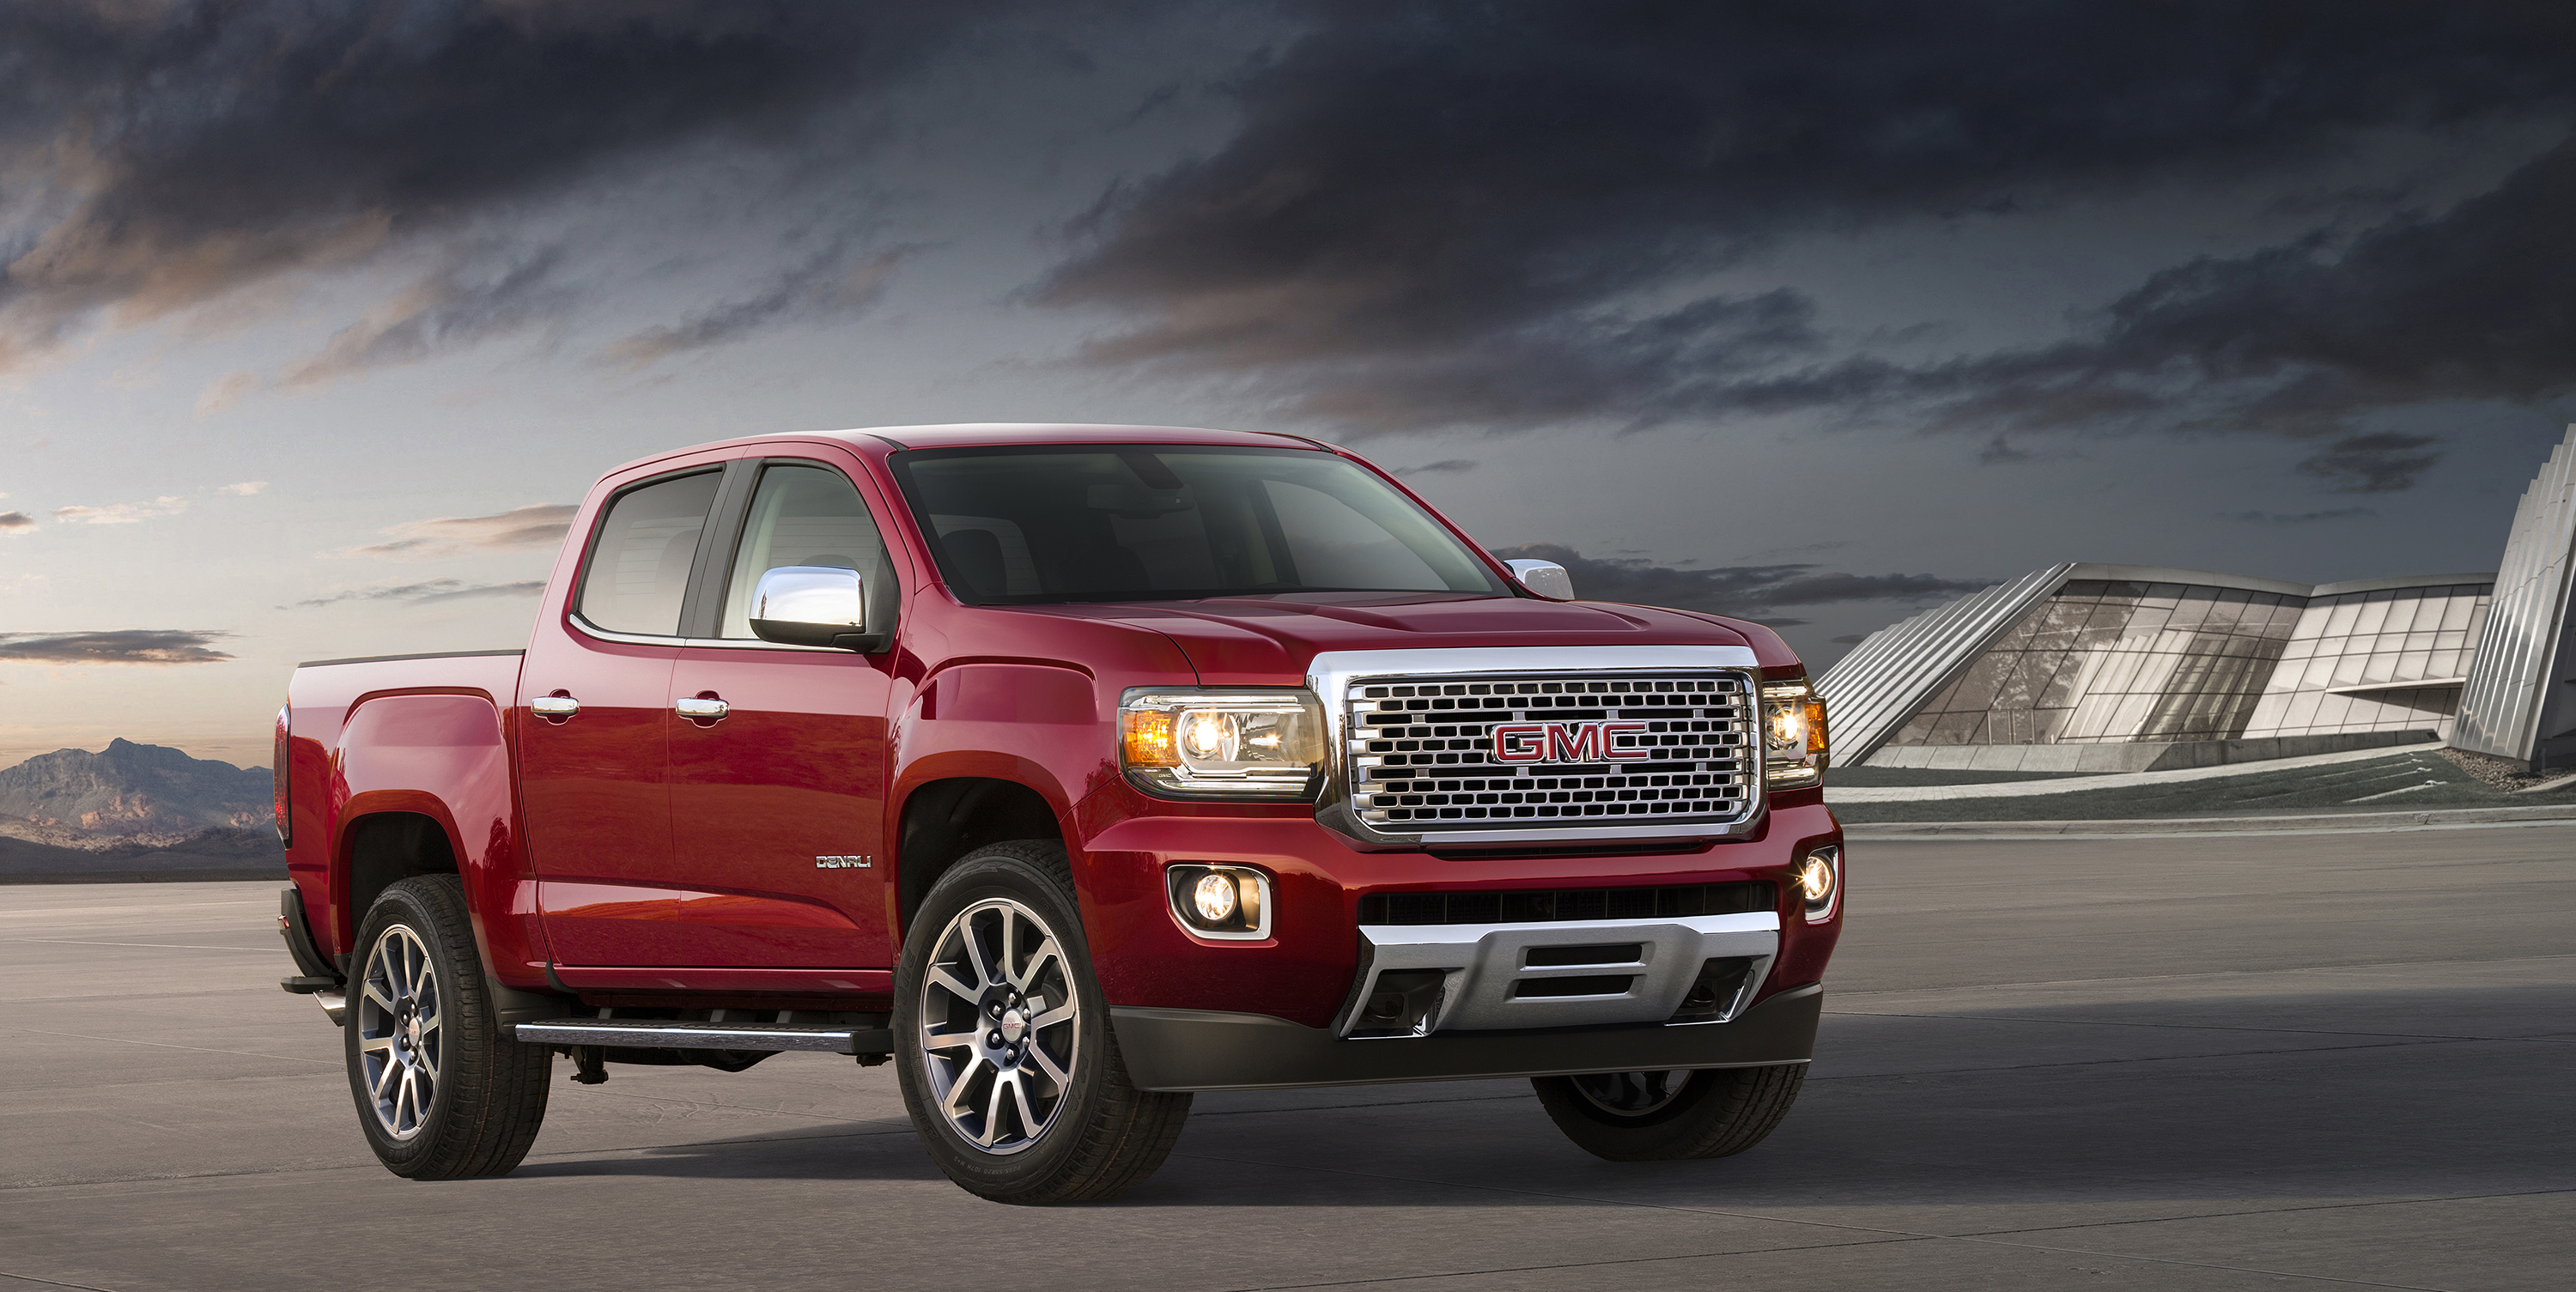 suv is suvs gmc receive analysis denali canyon set to news and updates